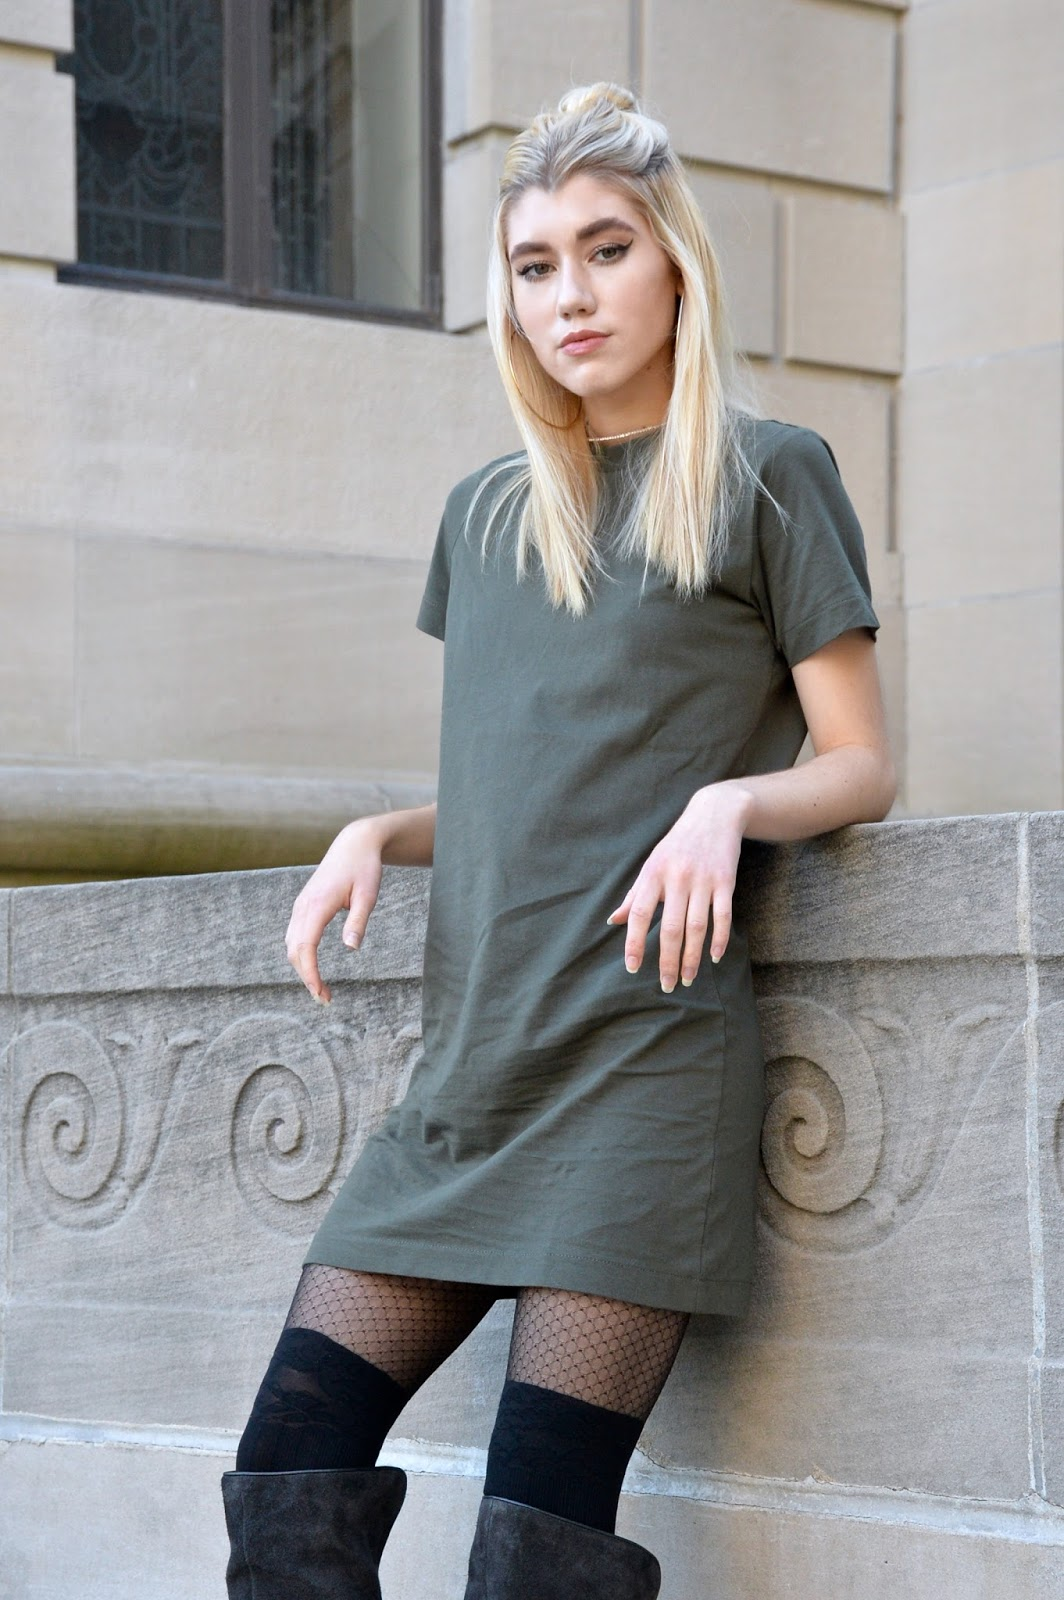 Hanging out in a green tee shirt dress with over the knee boots